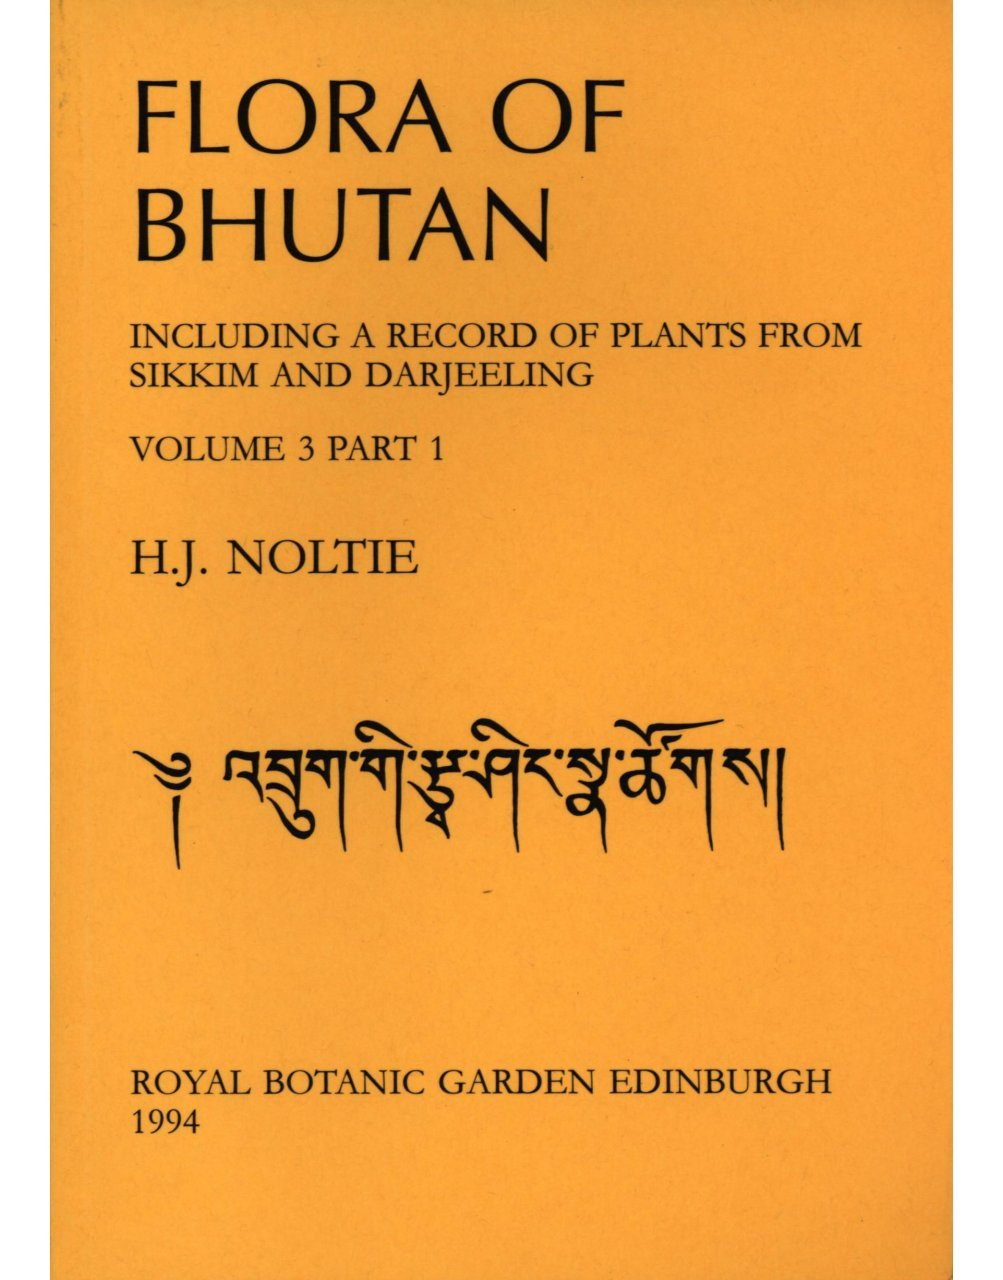 Flora of Bhutan, Volume 3, Part 1